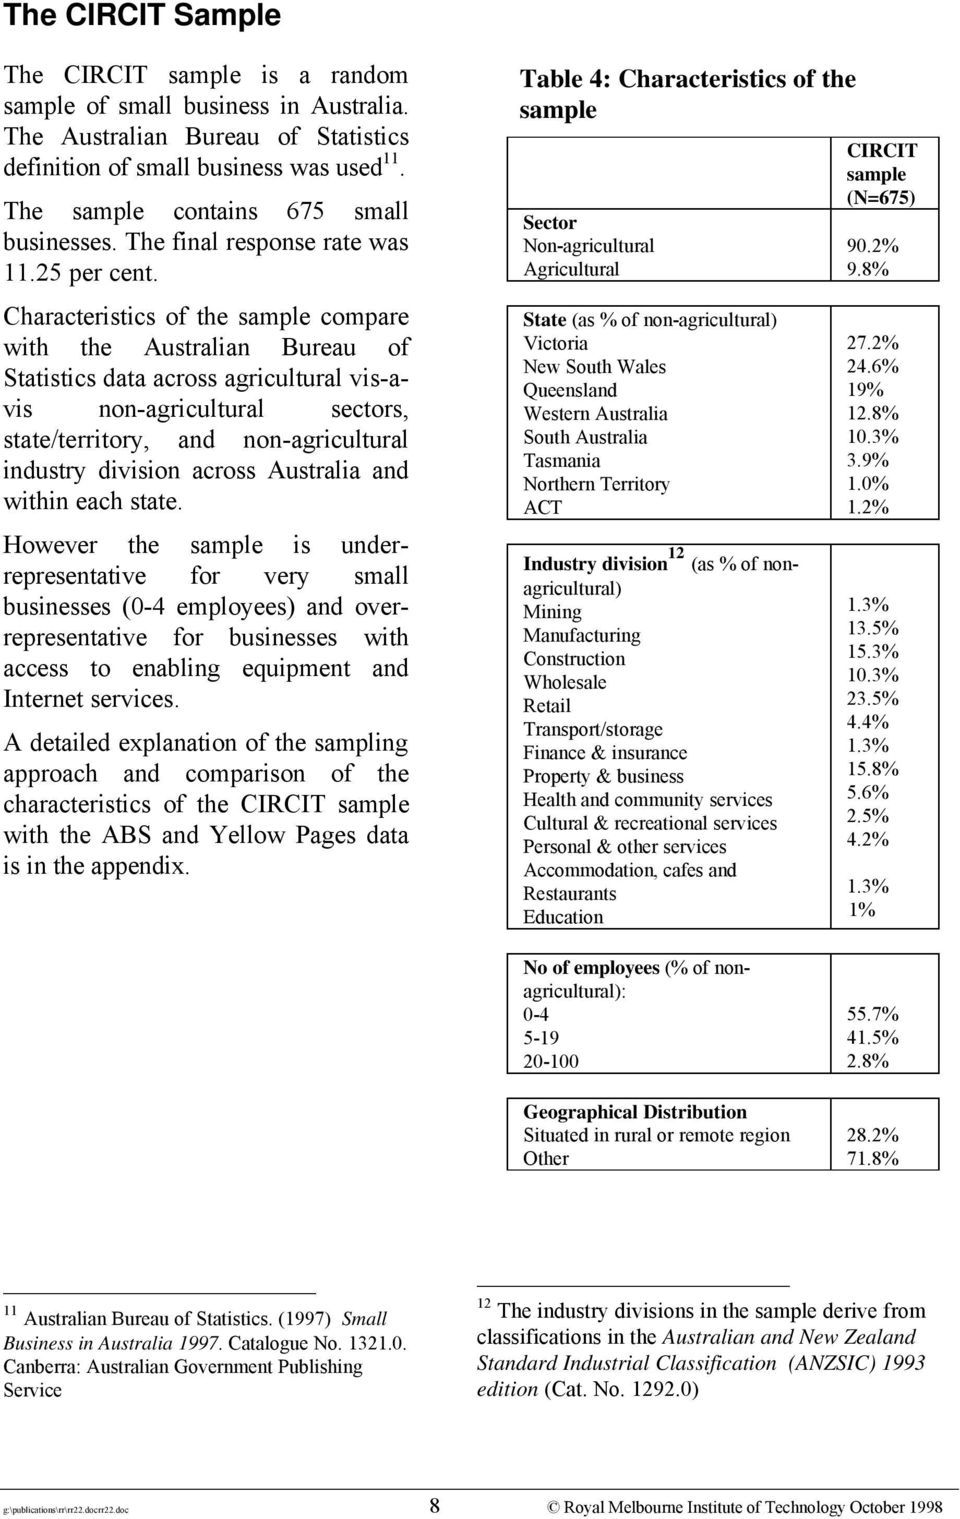 Characteristics of the sample compare with the Australian Bureau of Statistics data across agricultural vis-avis non-agricultural sectors, state/territory, and non-agricultural industry division